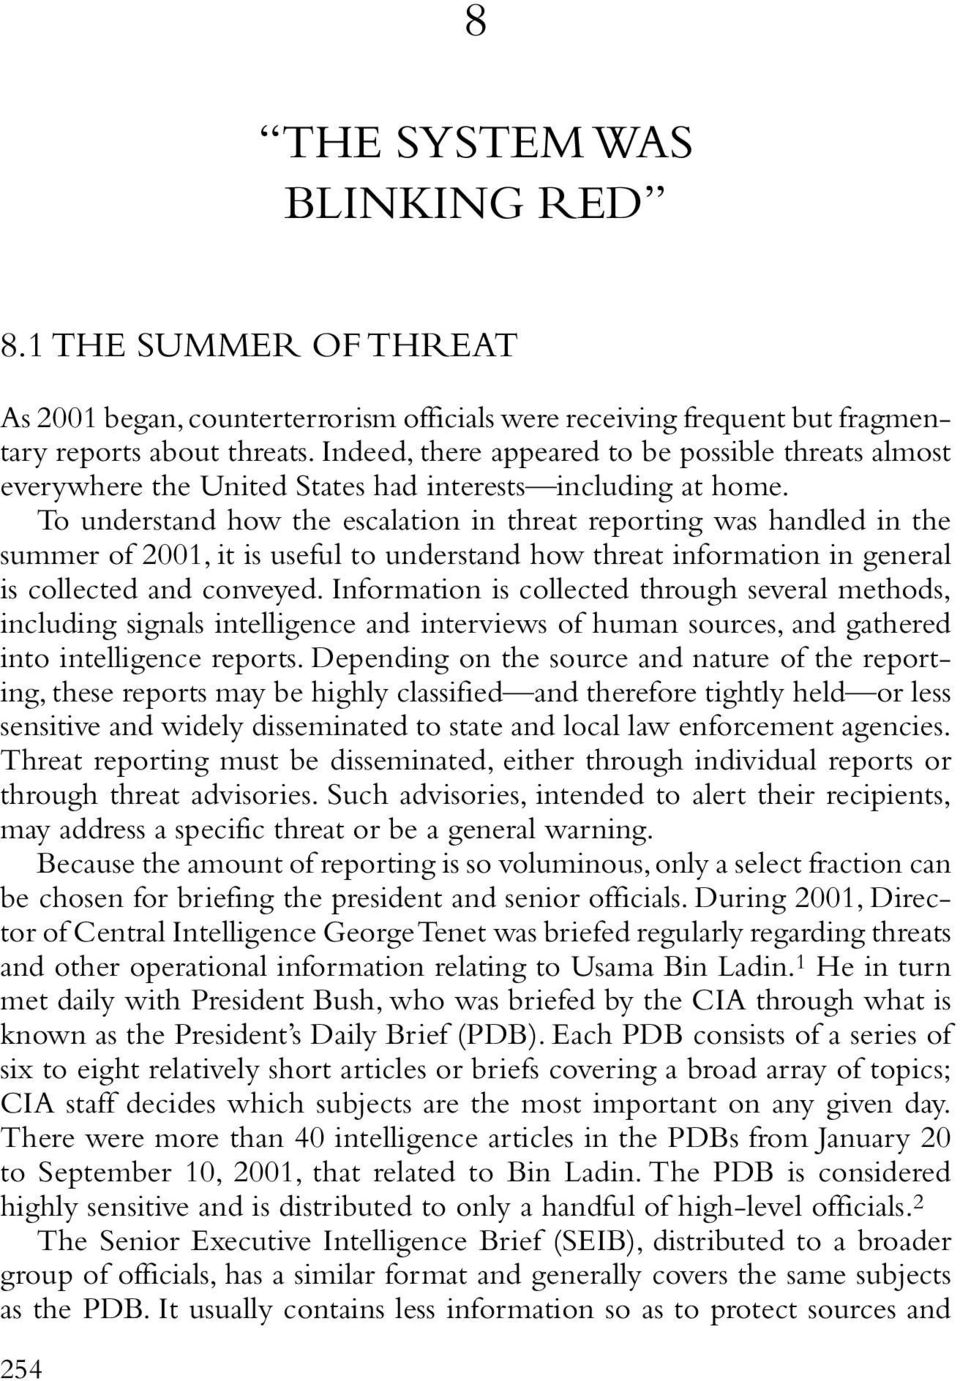 To understand how the escalation in threat reporting was handled in the summer of 2001, it is useful to understand how threat information in general is collected and conveyed.